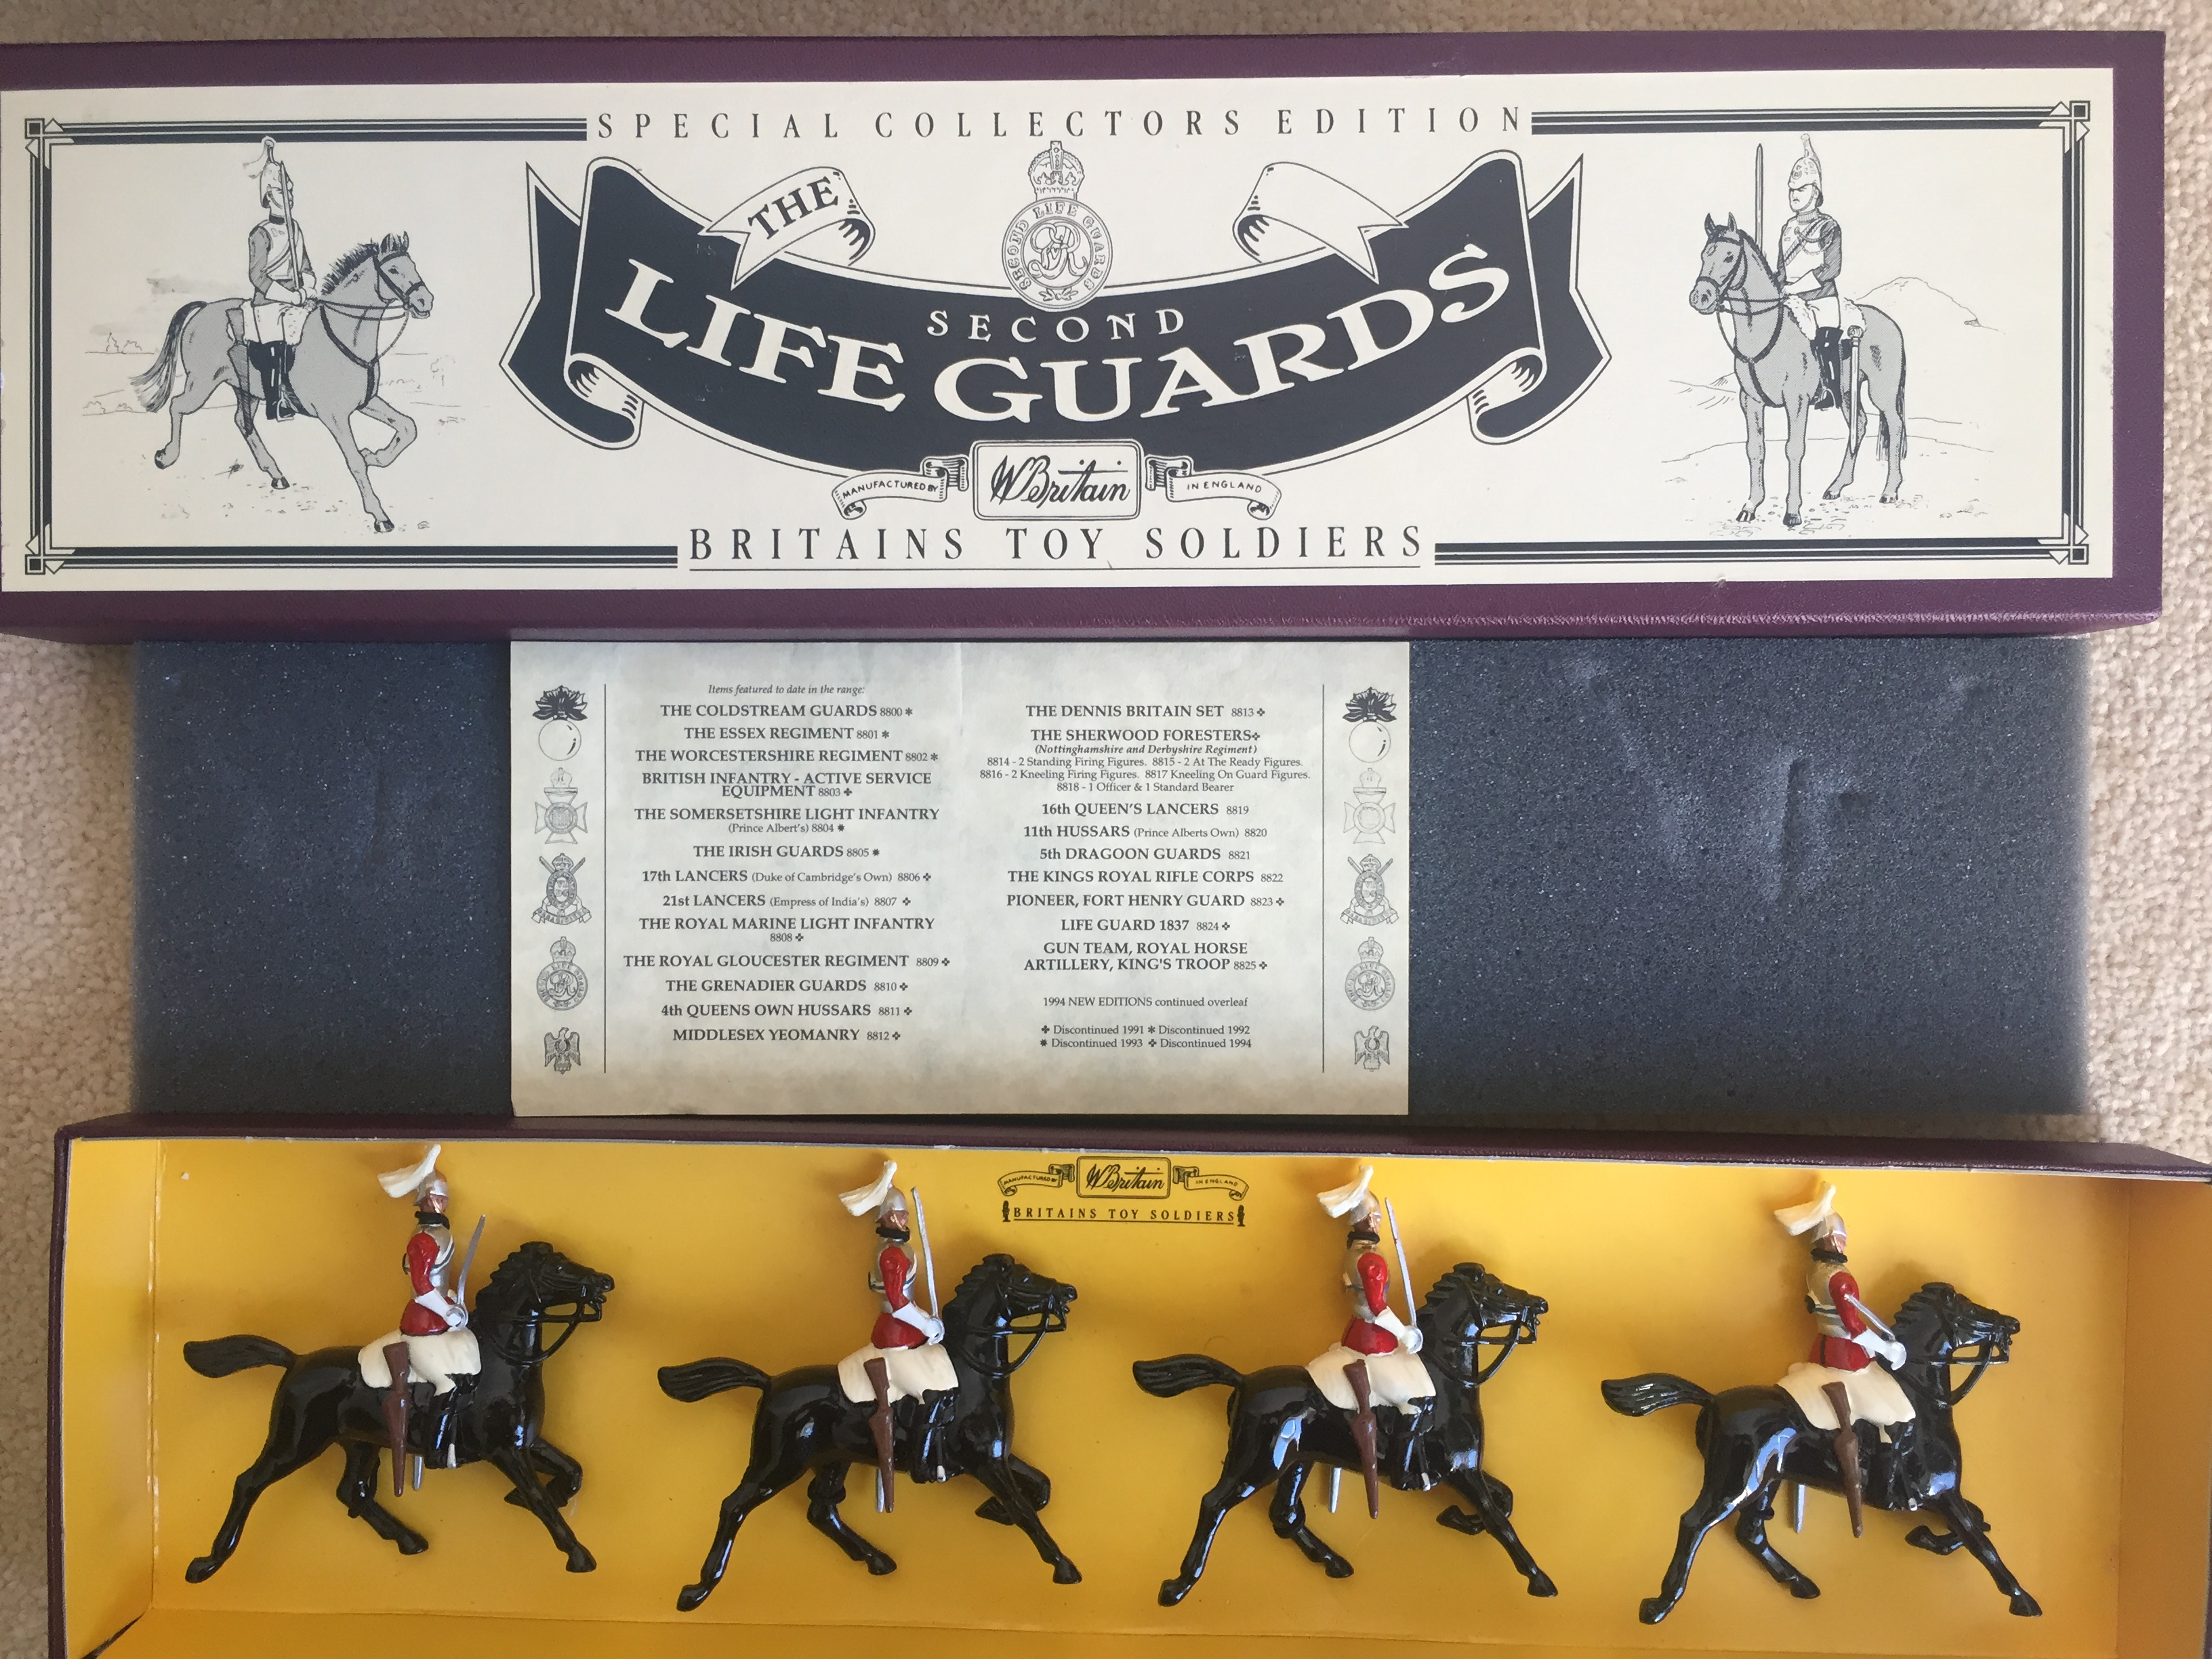 Britains Set  8829 2nd Life Guards